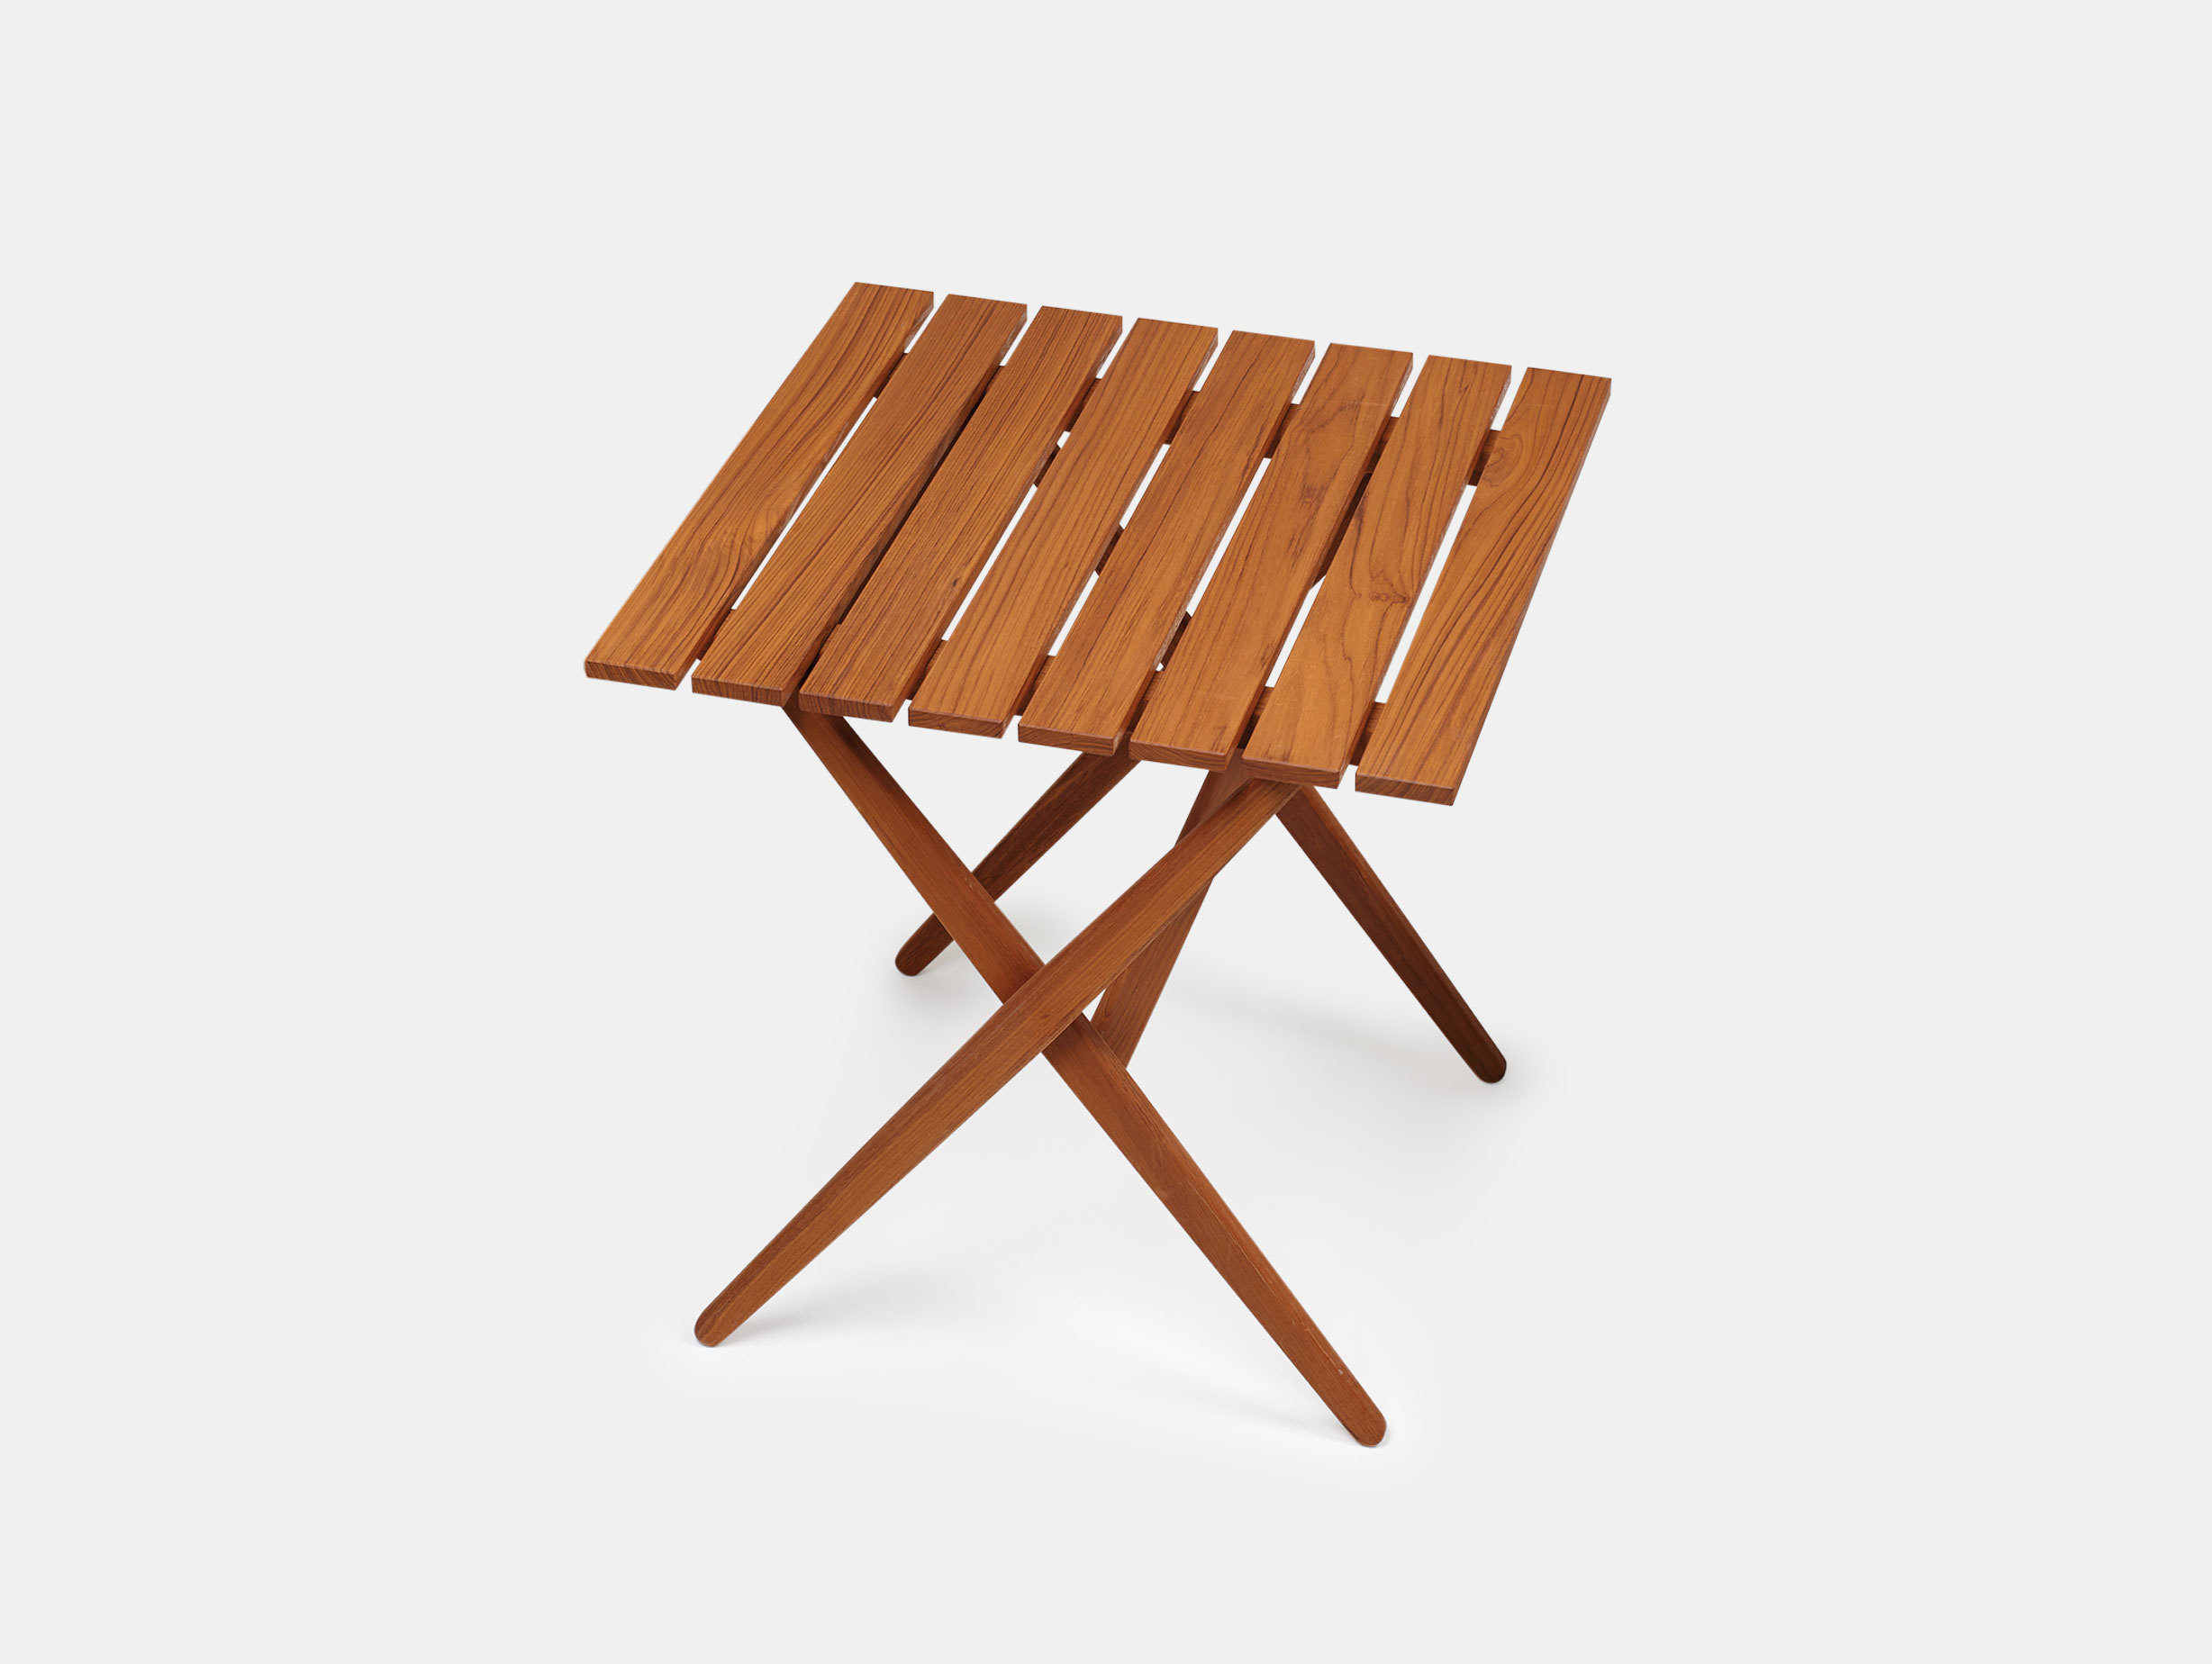 Mattiazzi Fionda Outdoor Table Teak Jasper Morrison